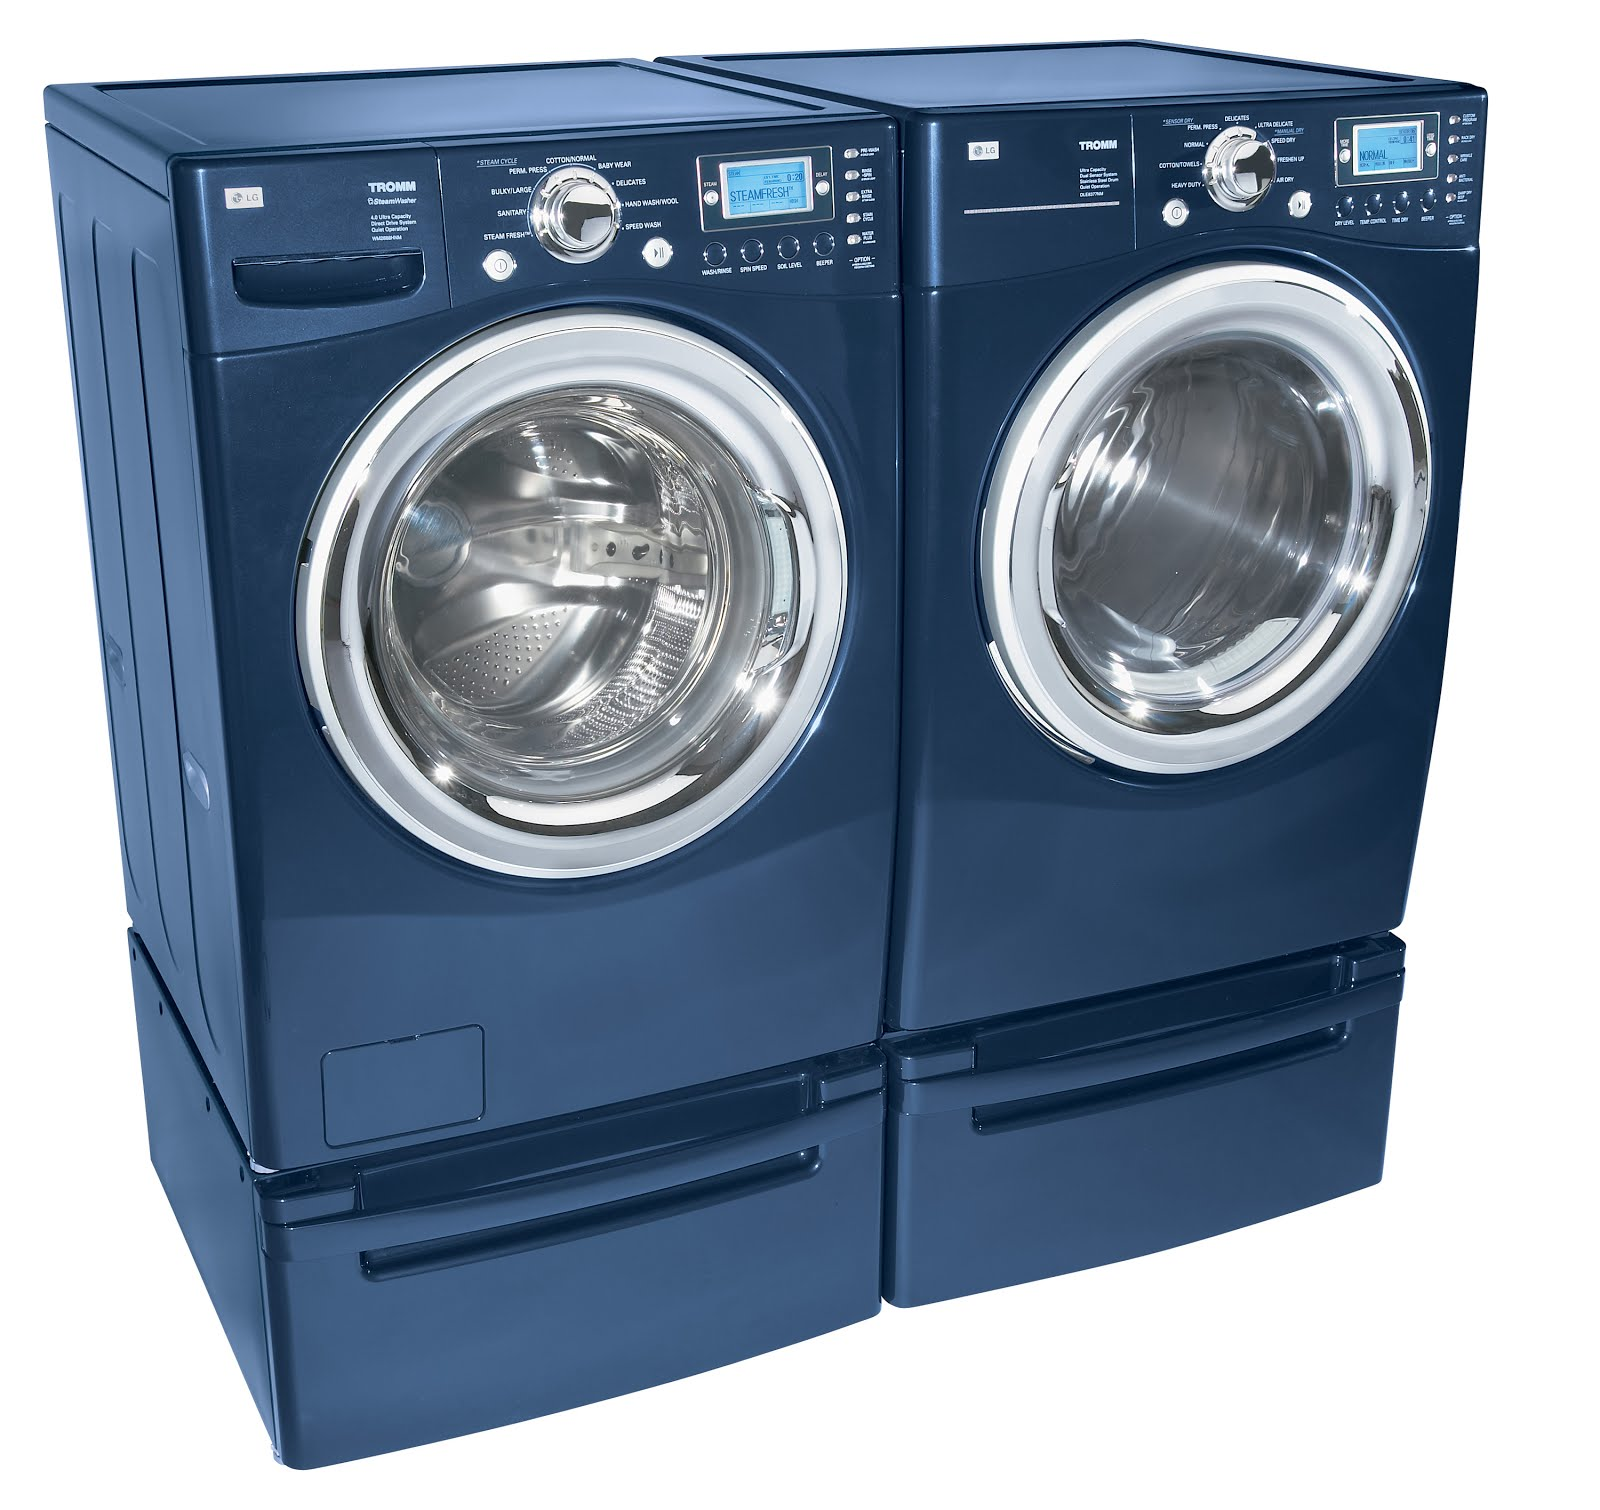 We service all major appliances